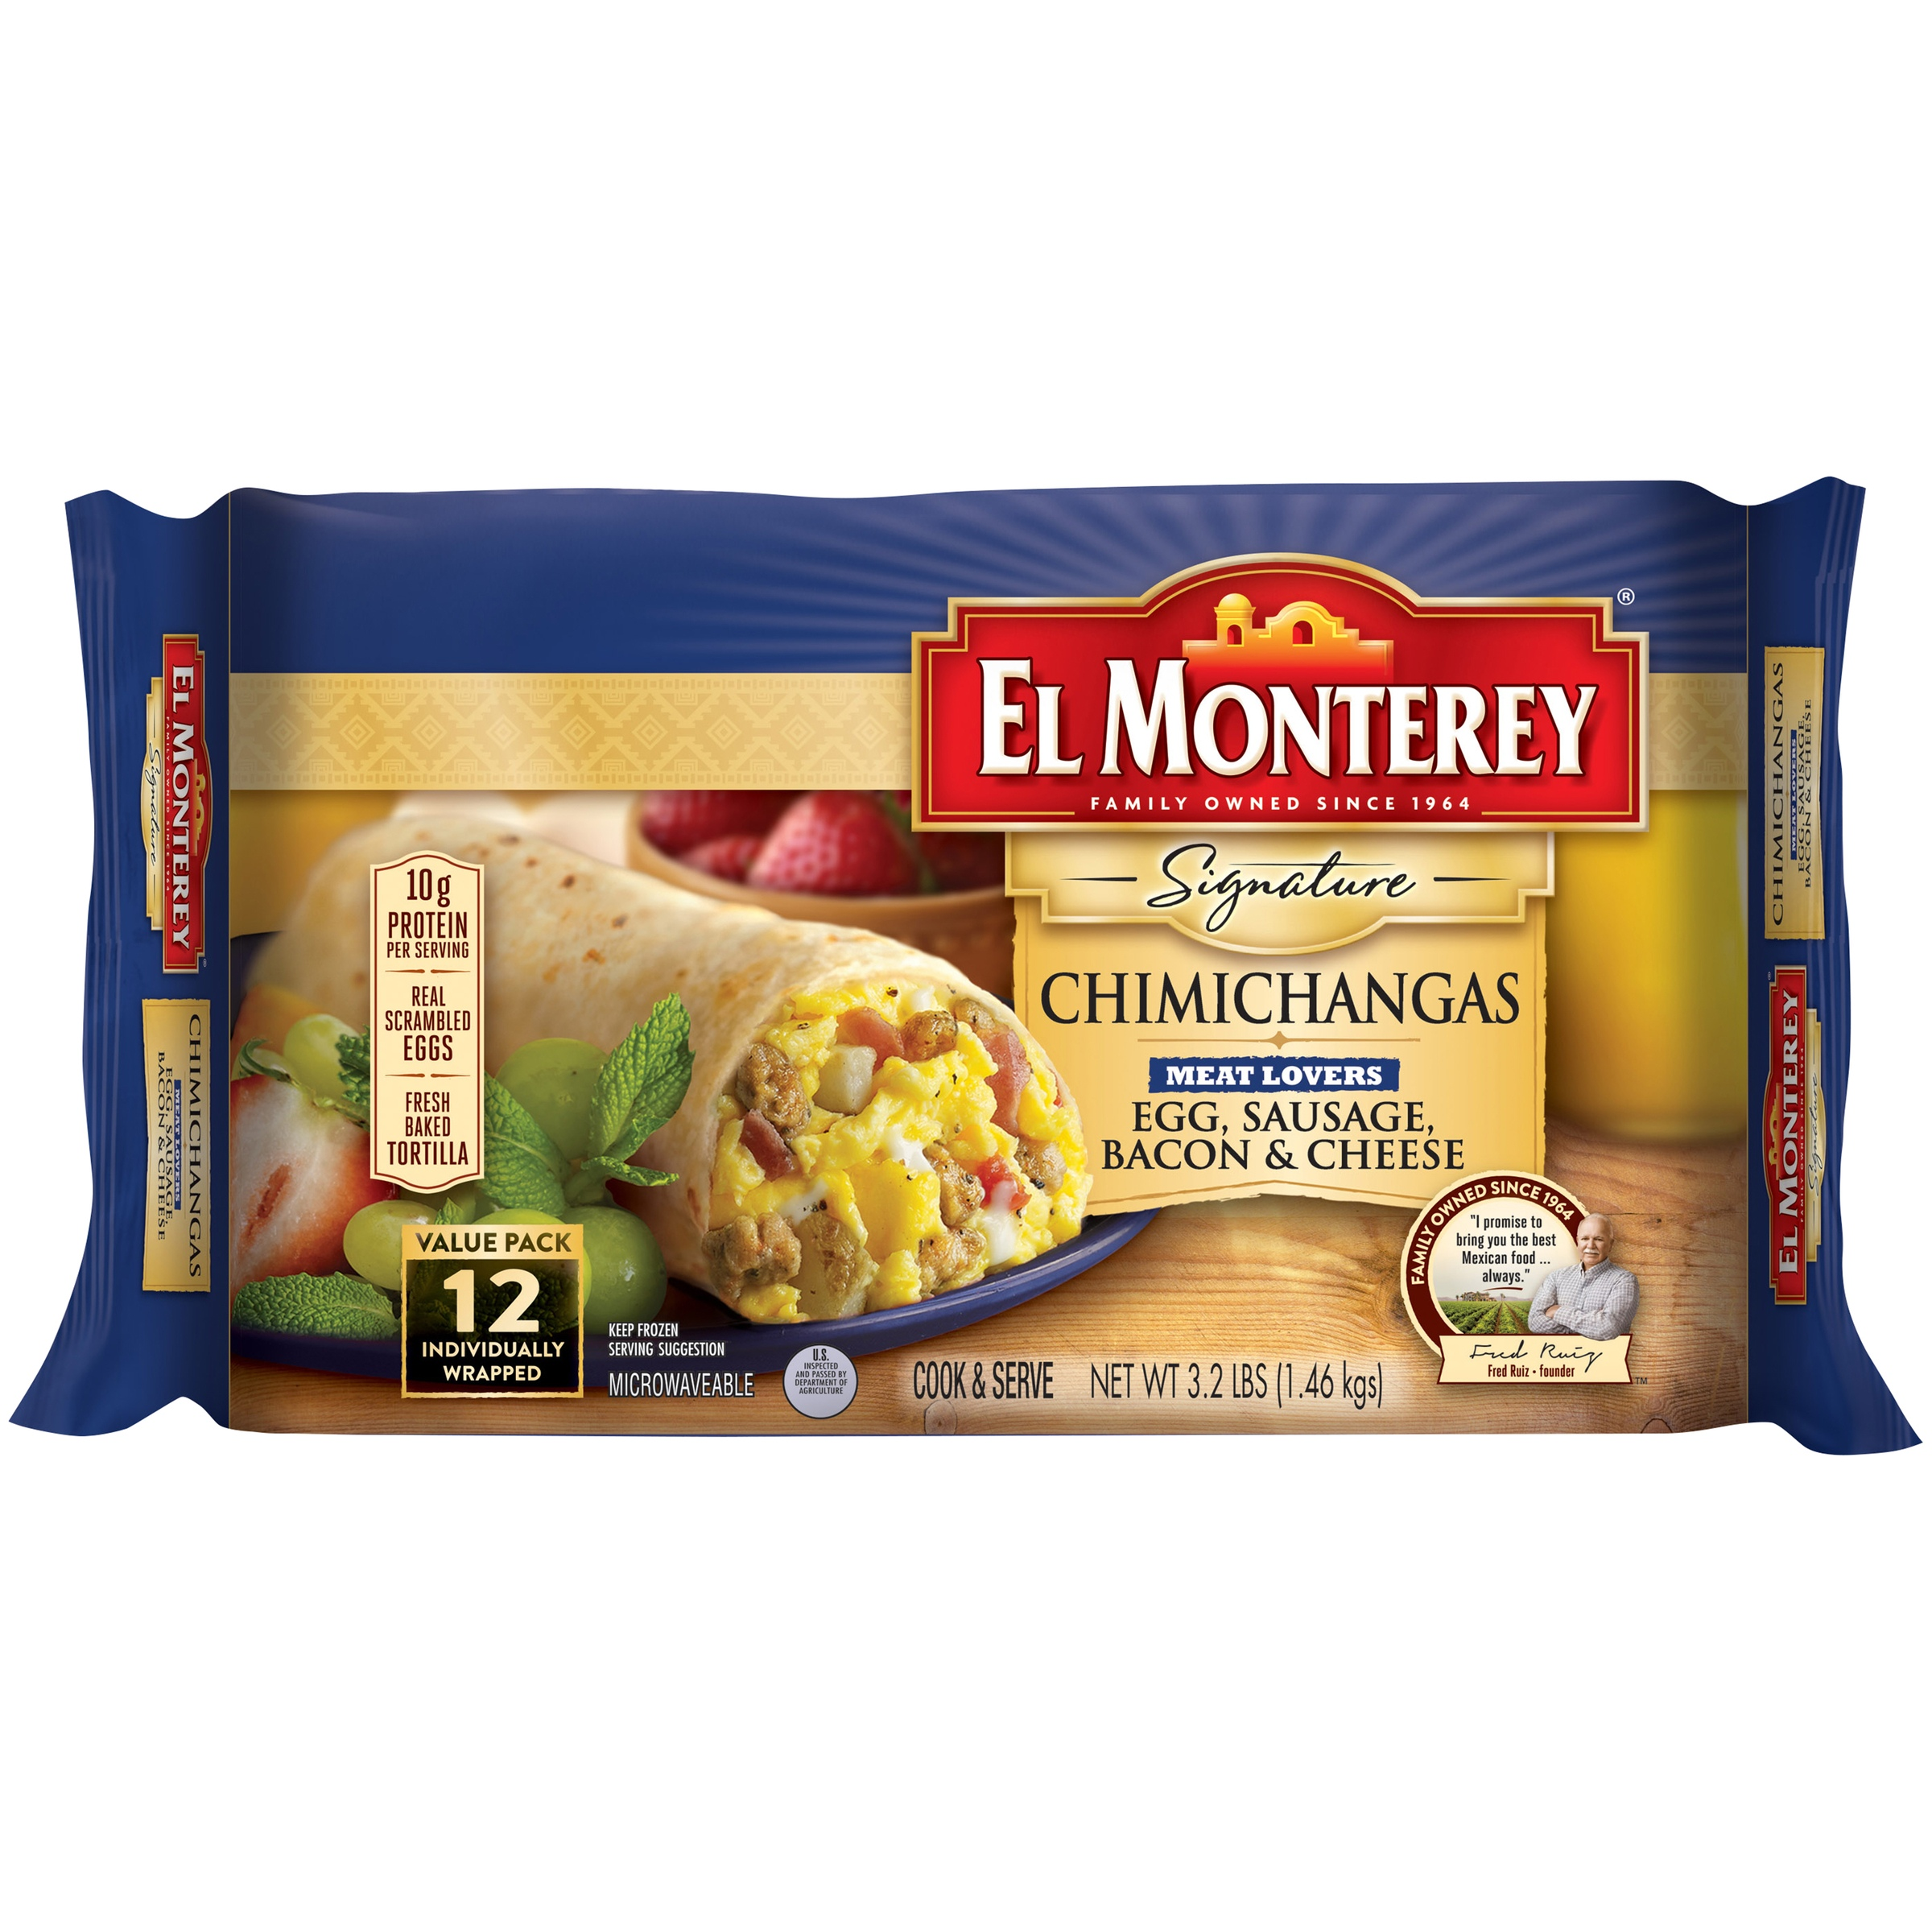 El Monterey Meat Lovers - Egg, Sausage, Bacon & Cheese Chimichanga (12ct)